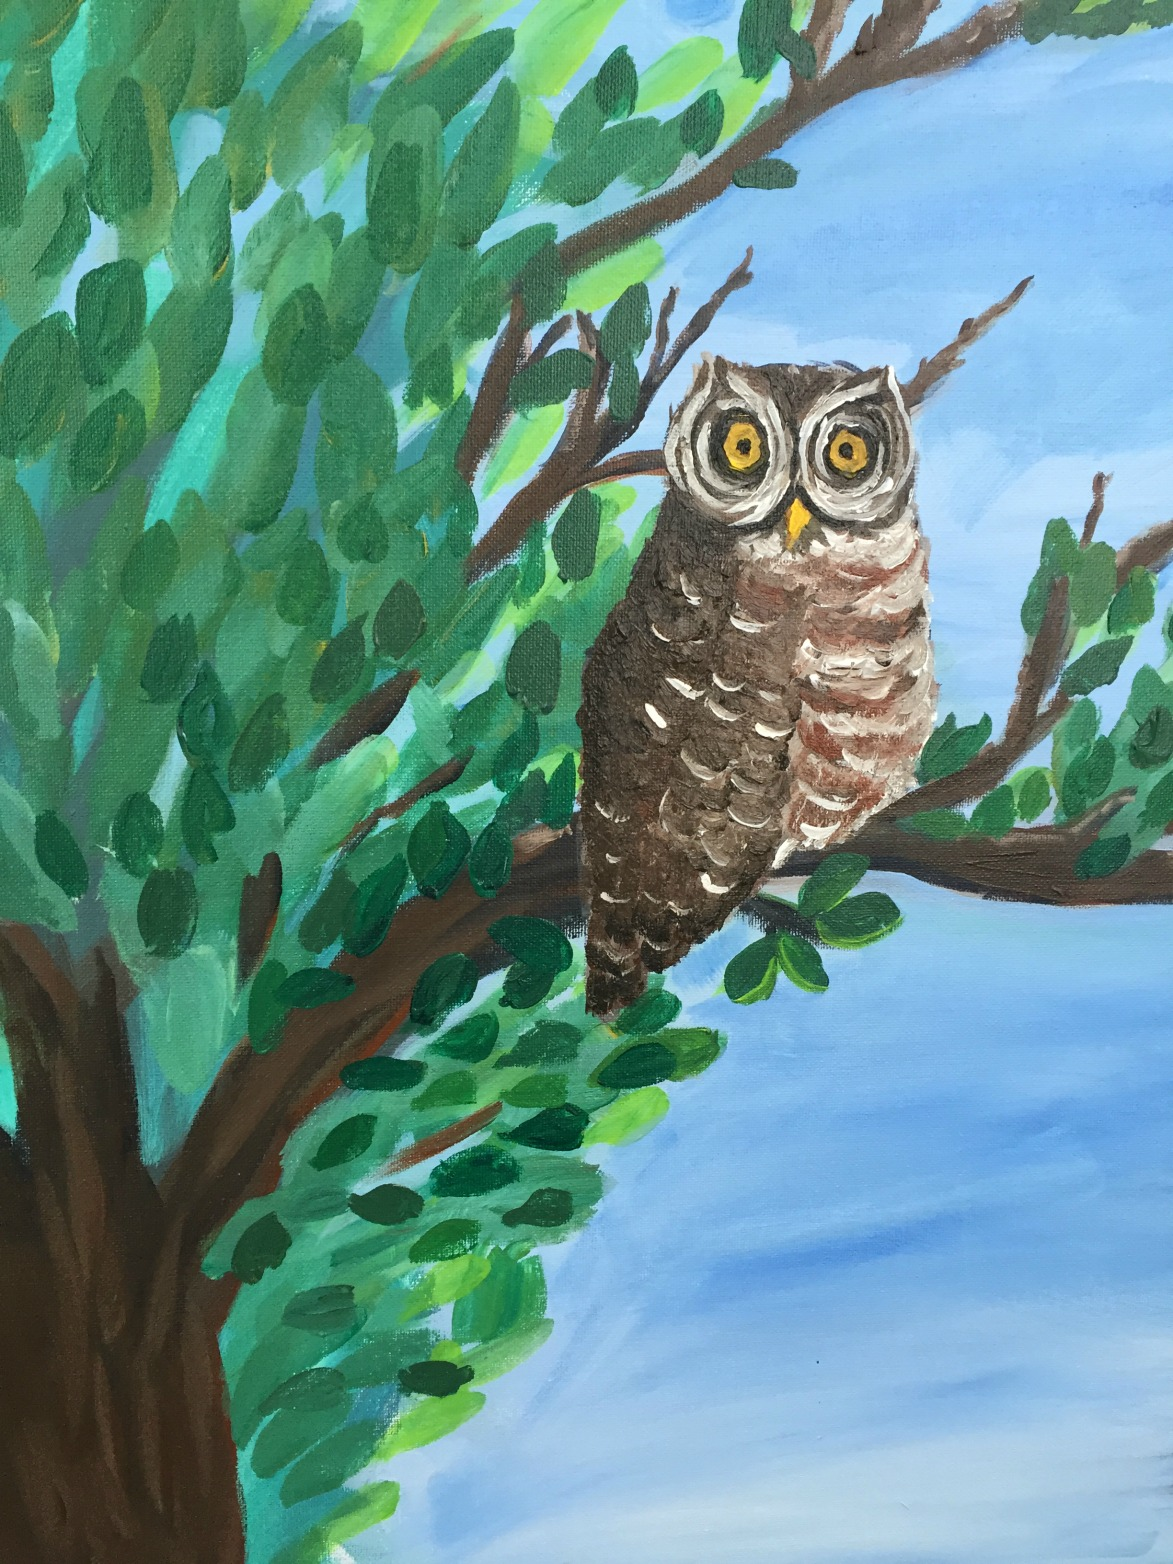 The Forest Watcher - Owl Painting by Iris Mes Low for 100 Braid St Studios